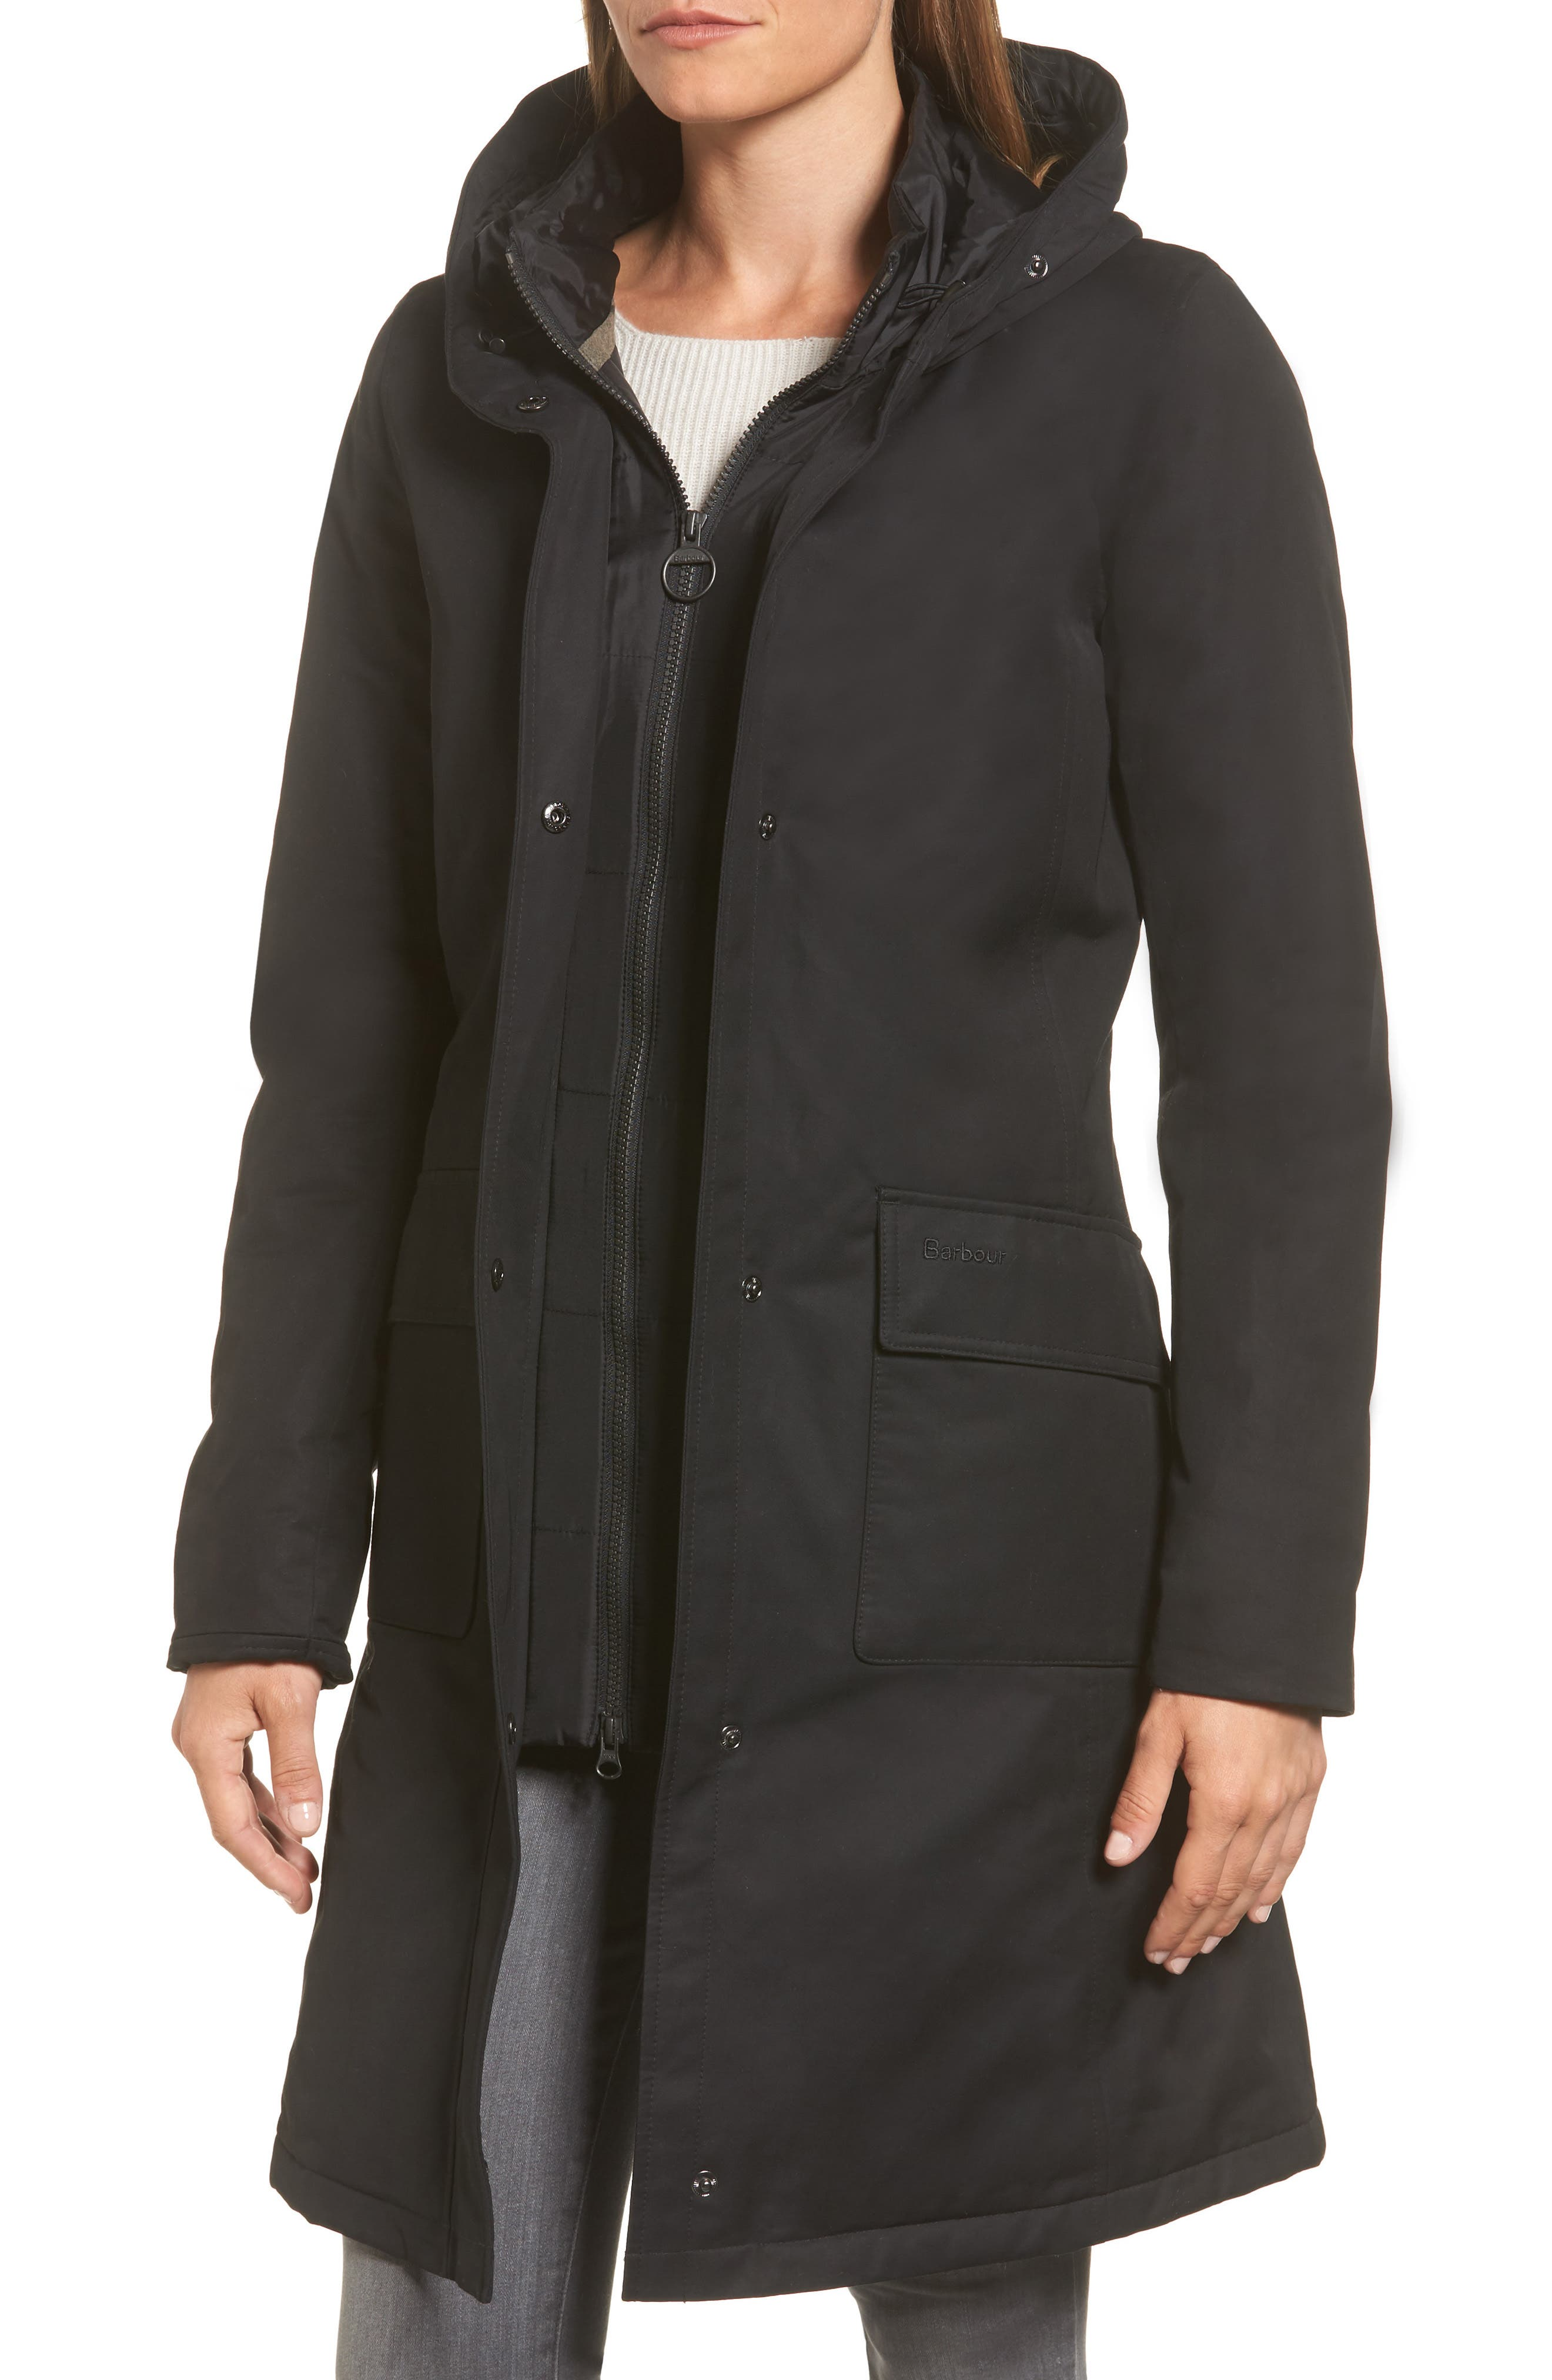 Linton Hooded Waterproof Jacket with Faux Fur Trim,                             Alternate thumbnail 4, color,                             Black